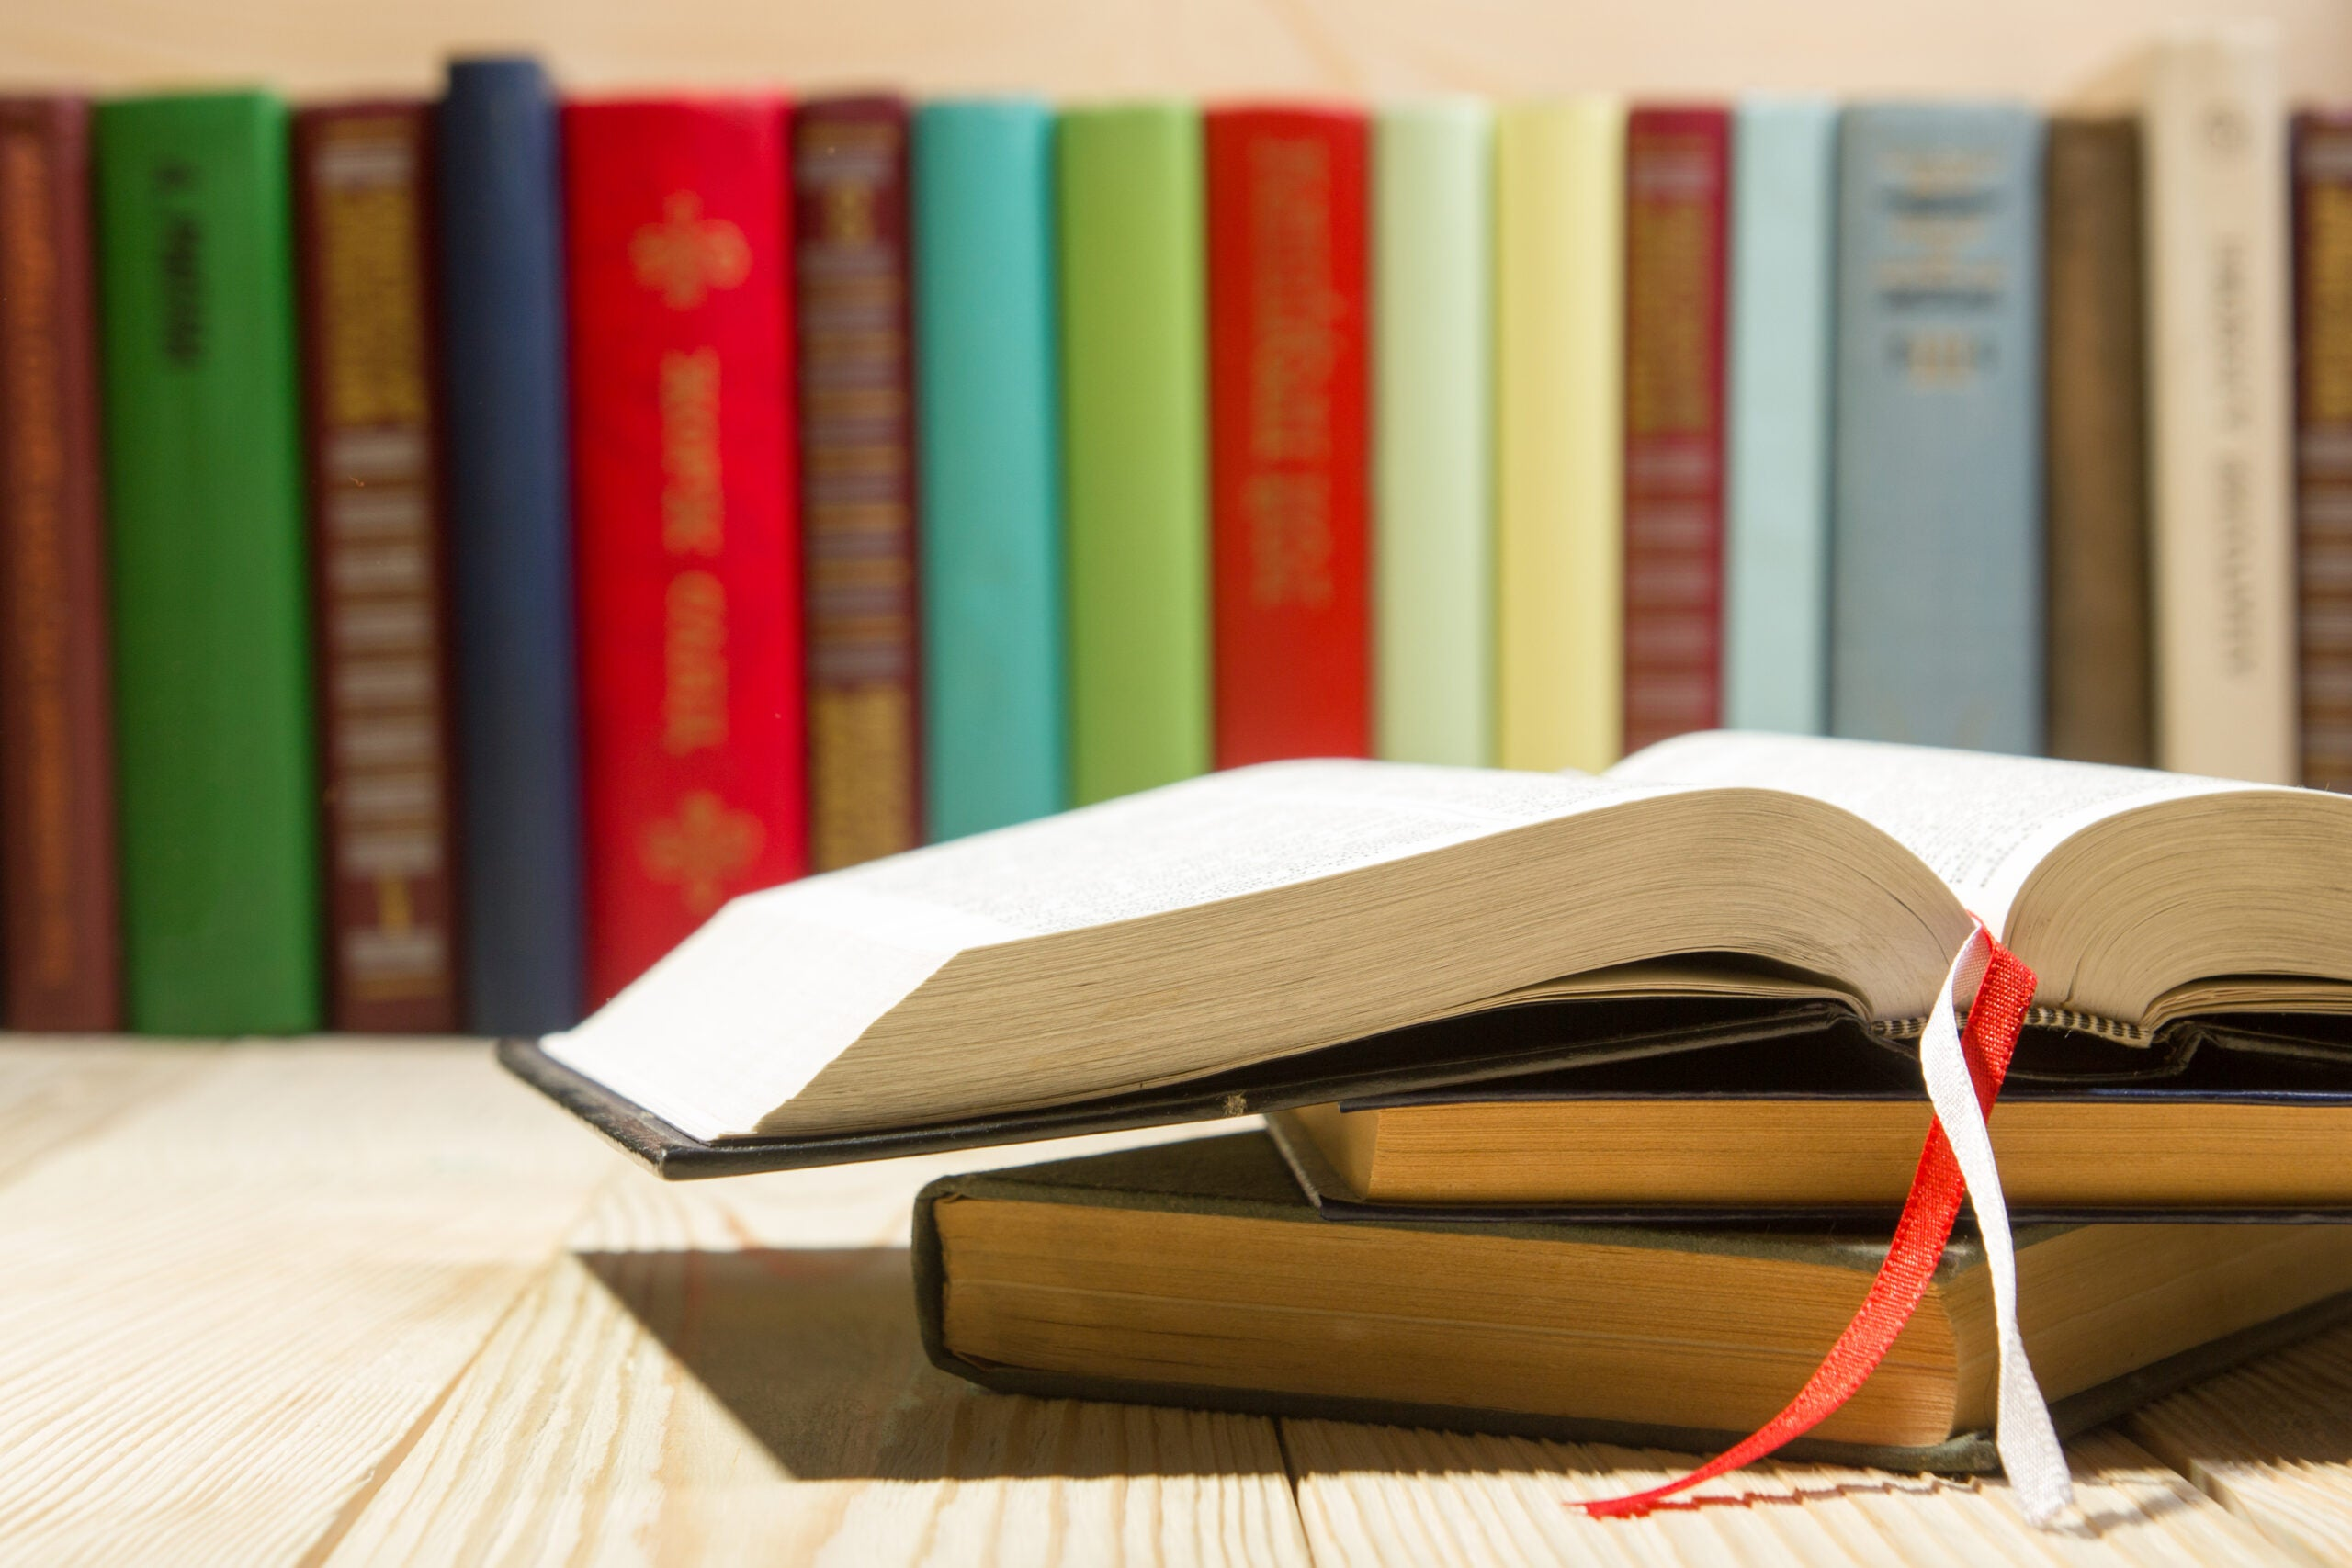 Twenty-three science books that make excellent gifts